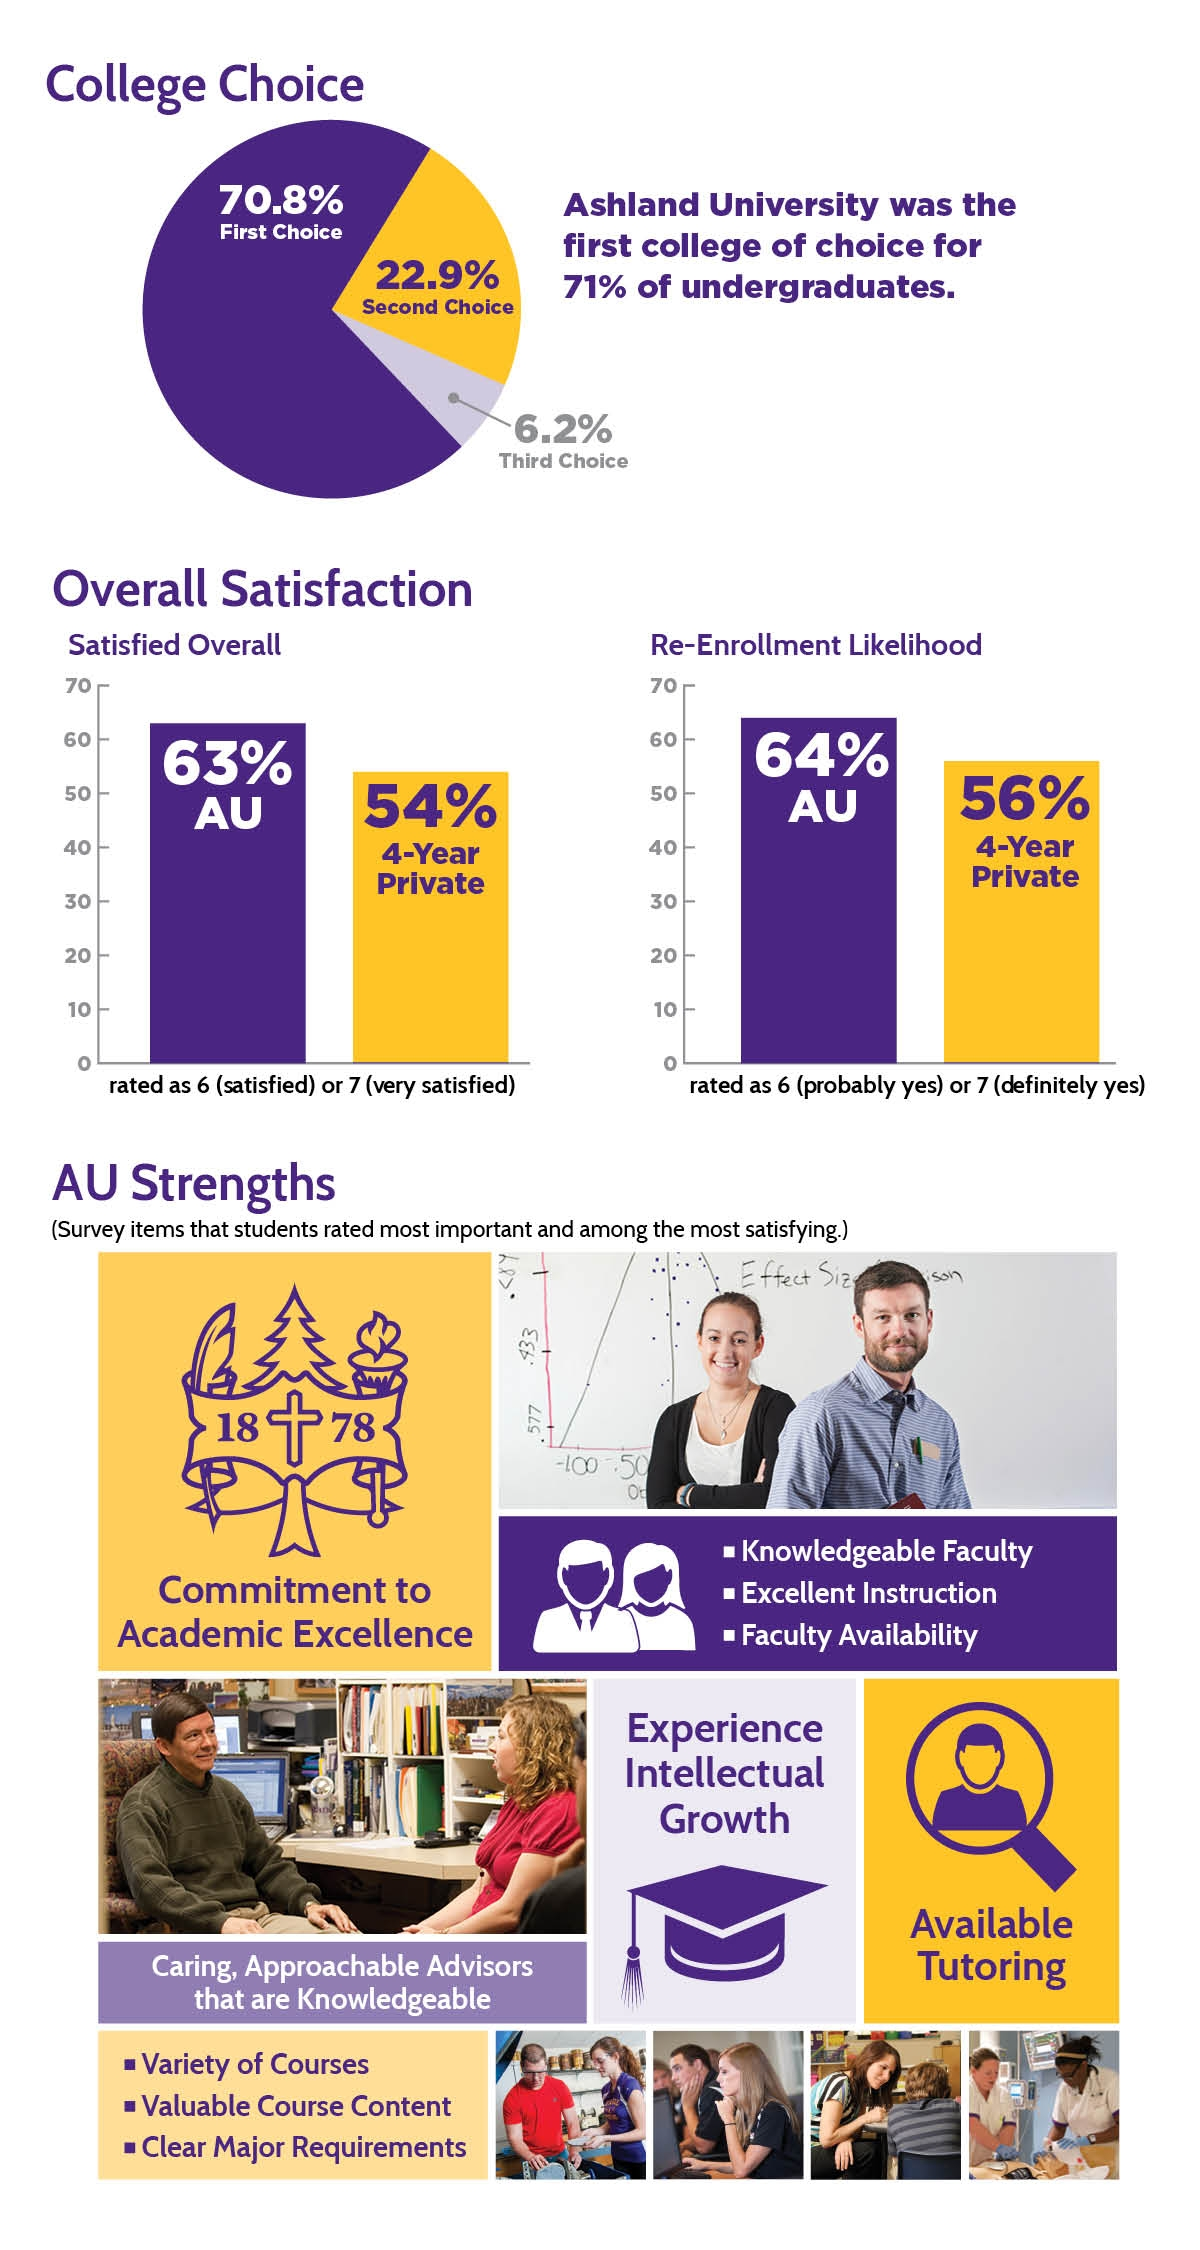 Ashland University was the first college of choice for 71% of undergraduates. 63% overall satisfaction; 64% Re-enrollment likelihood.